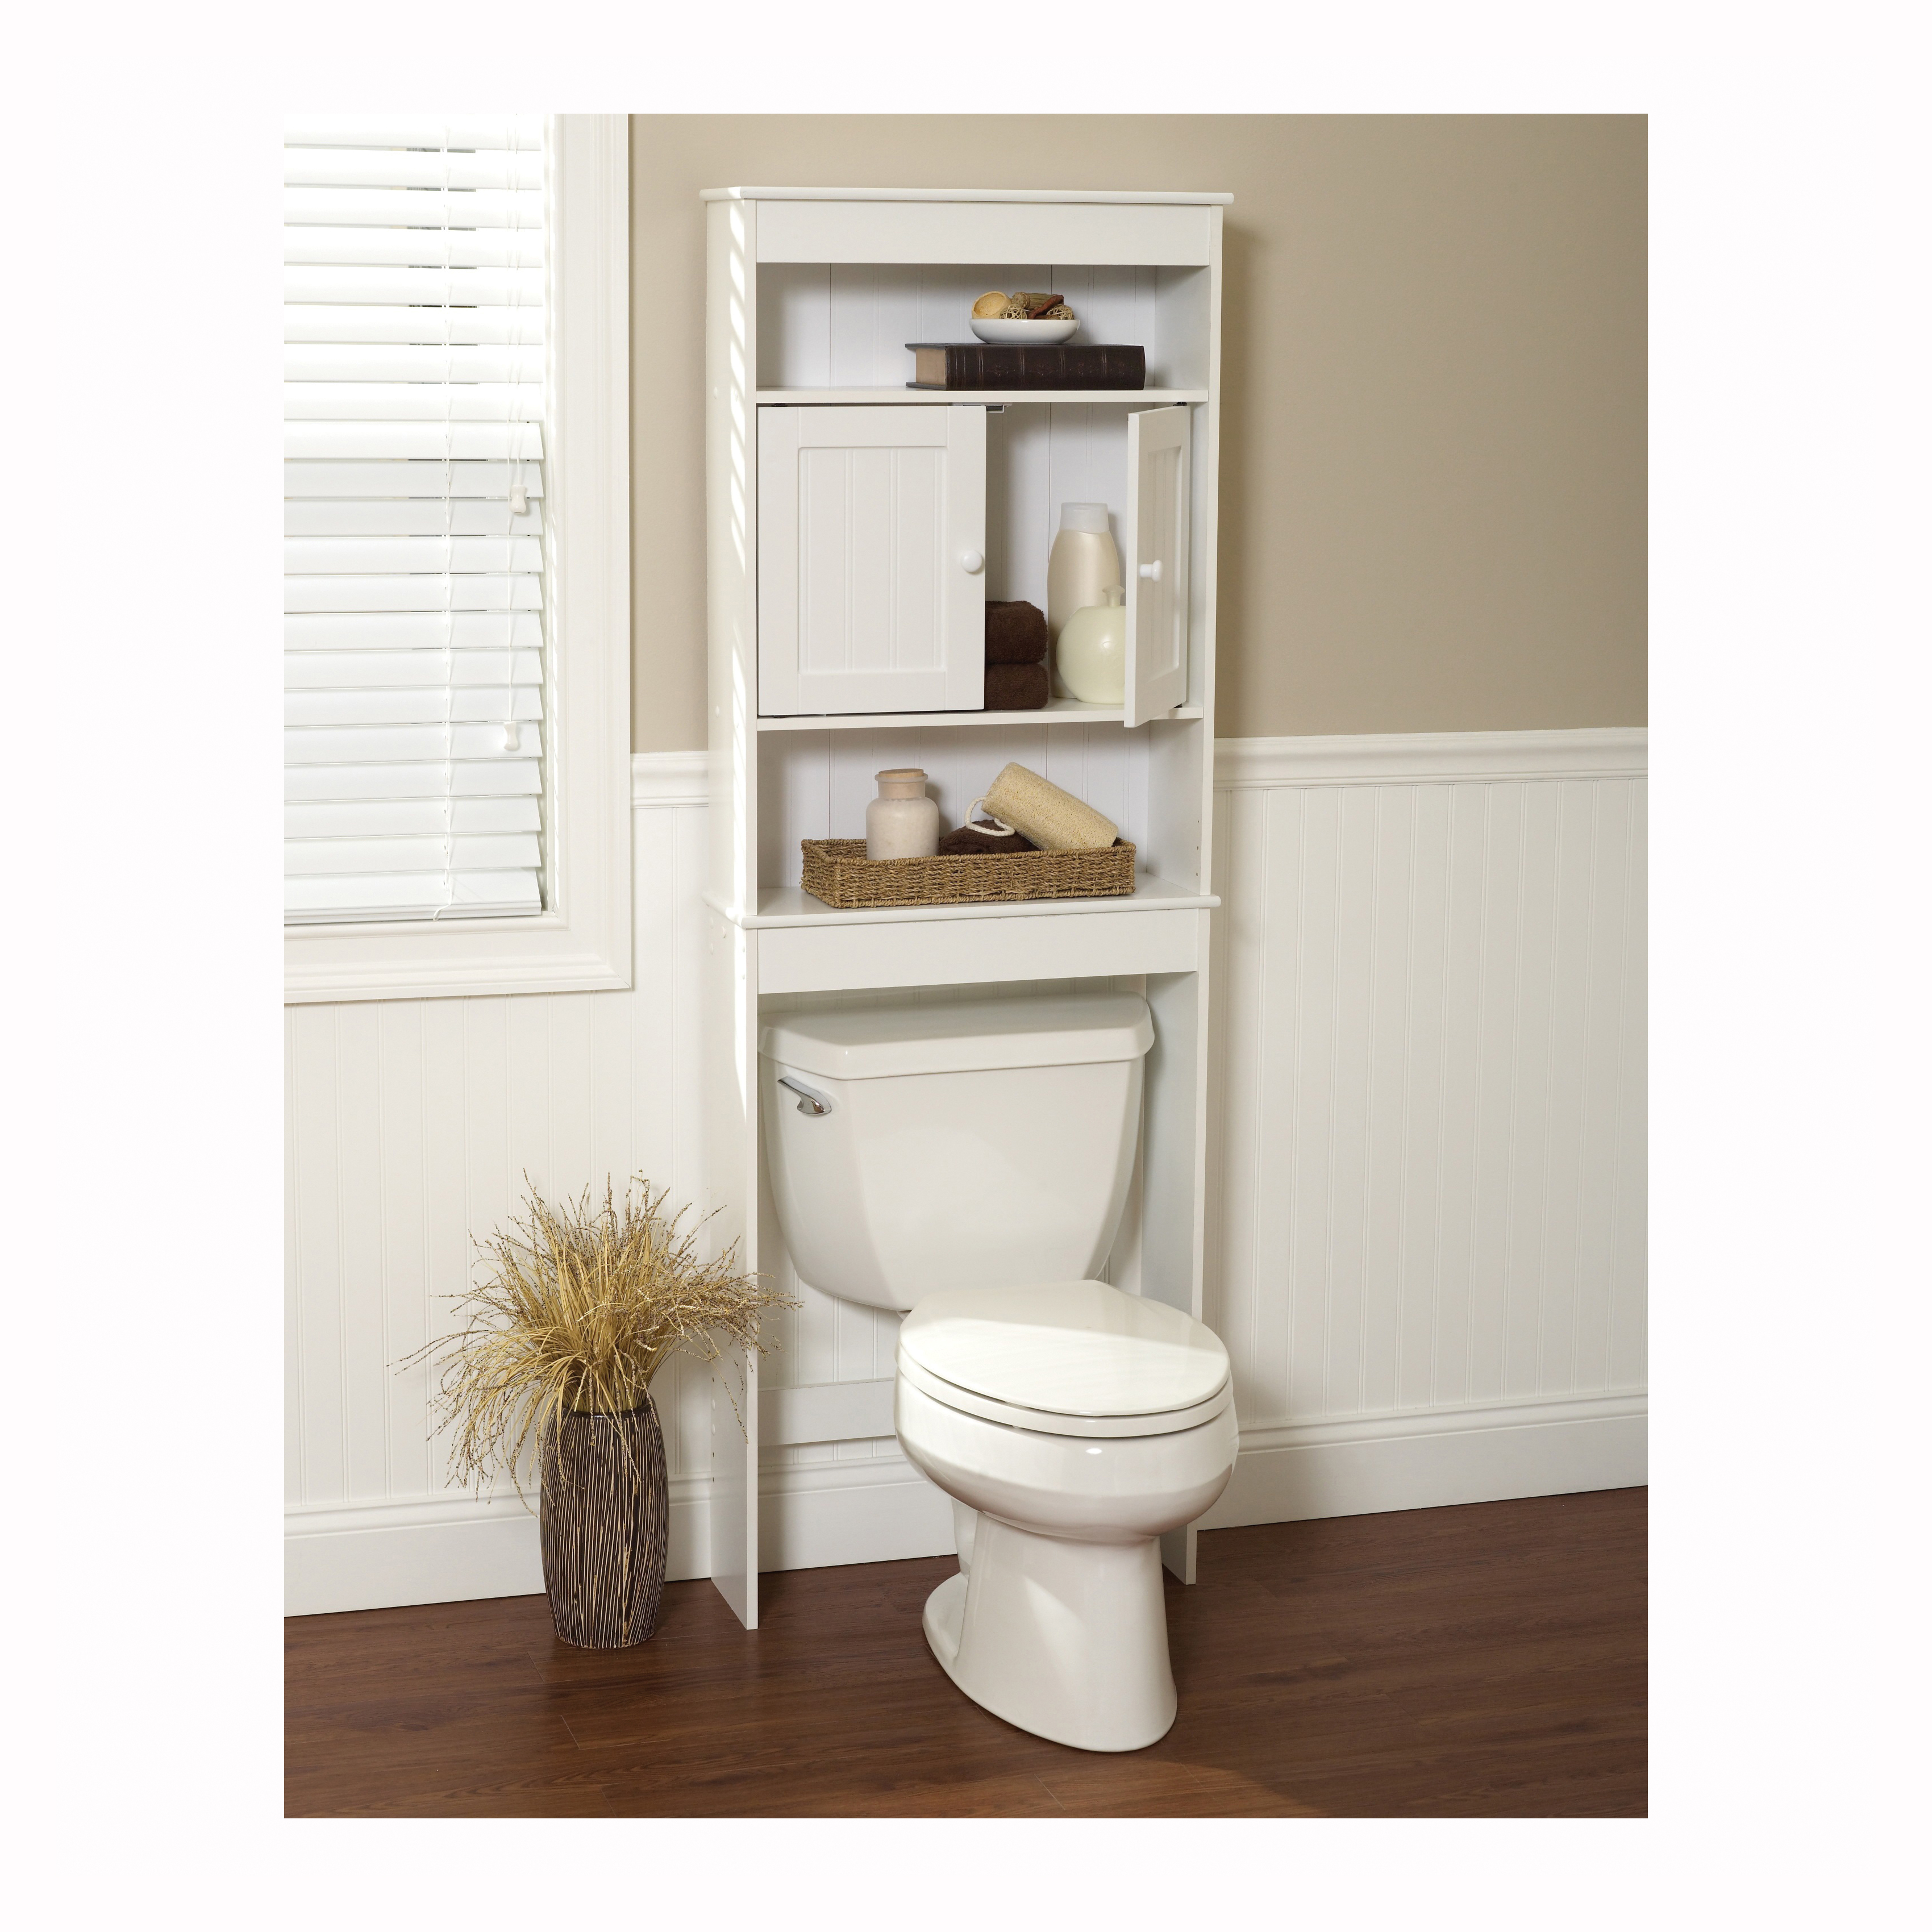 Picture of Zenna Home Cottage 9119W Bathroom Spacesaver, 3-Shelf, Wood